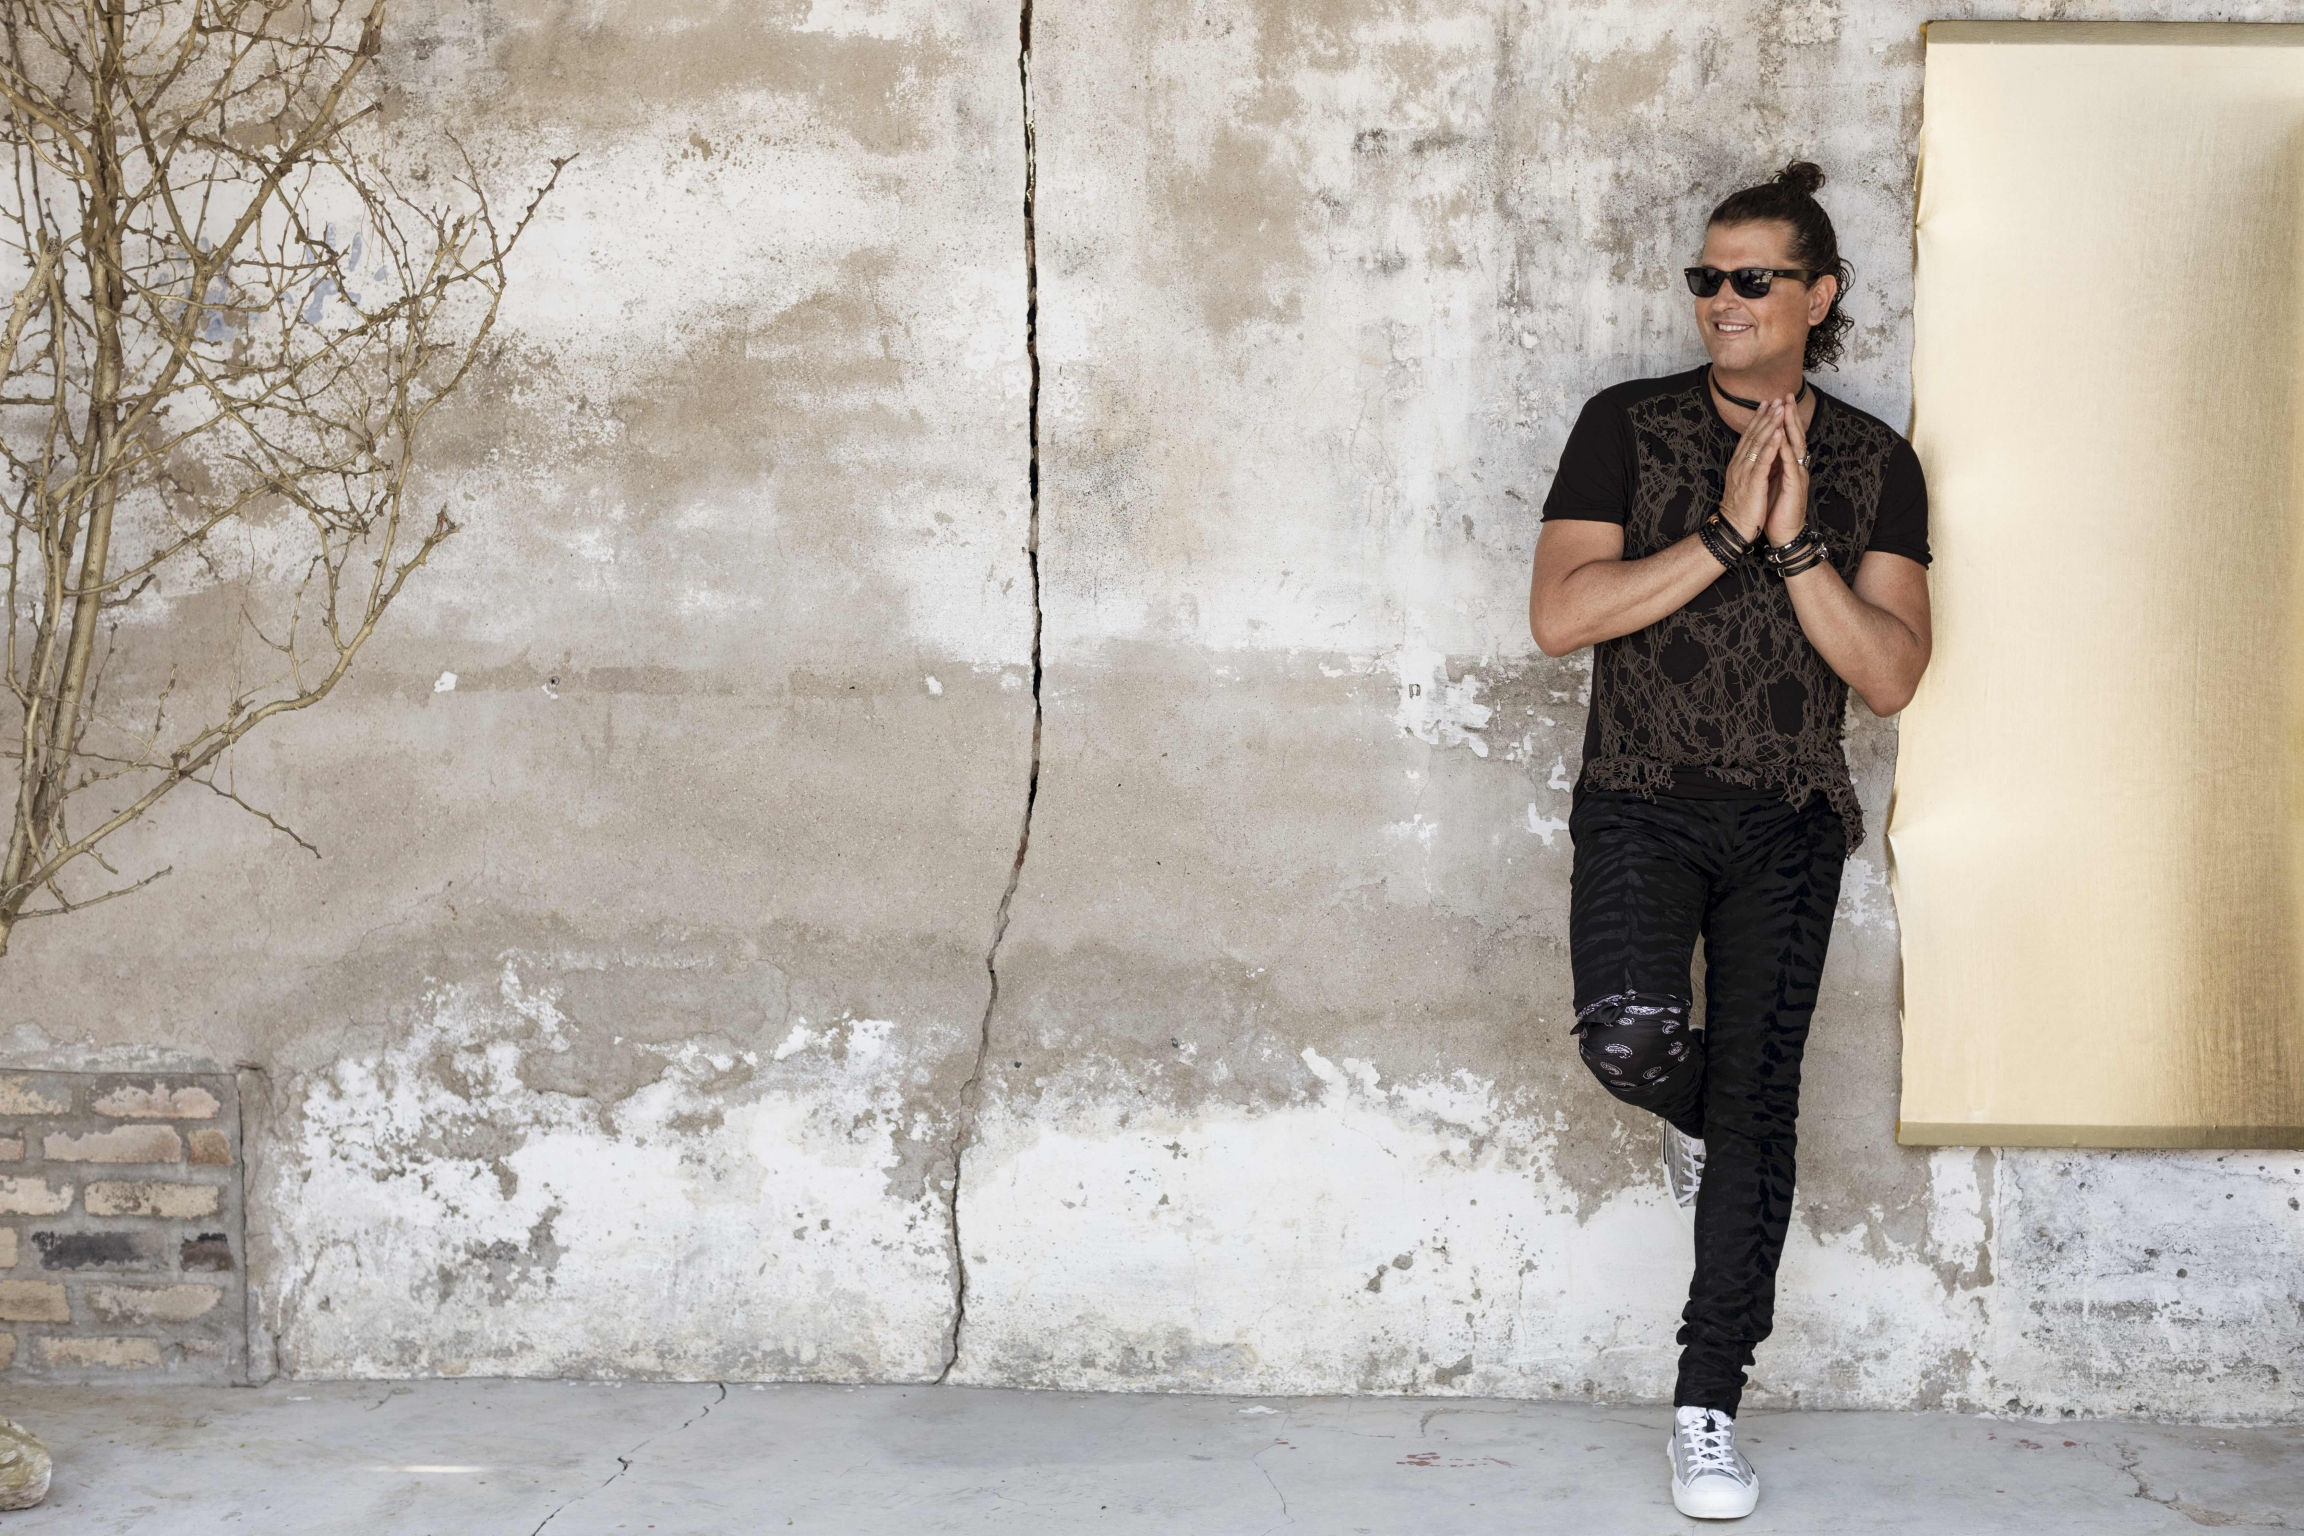 Colombian singer Carlos Vives stresses the importance of protecting the environment.